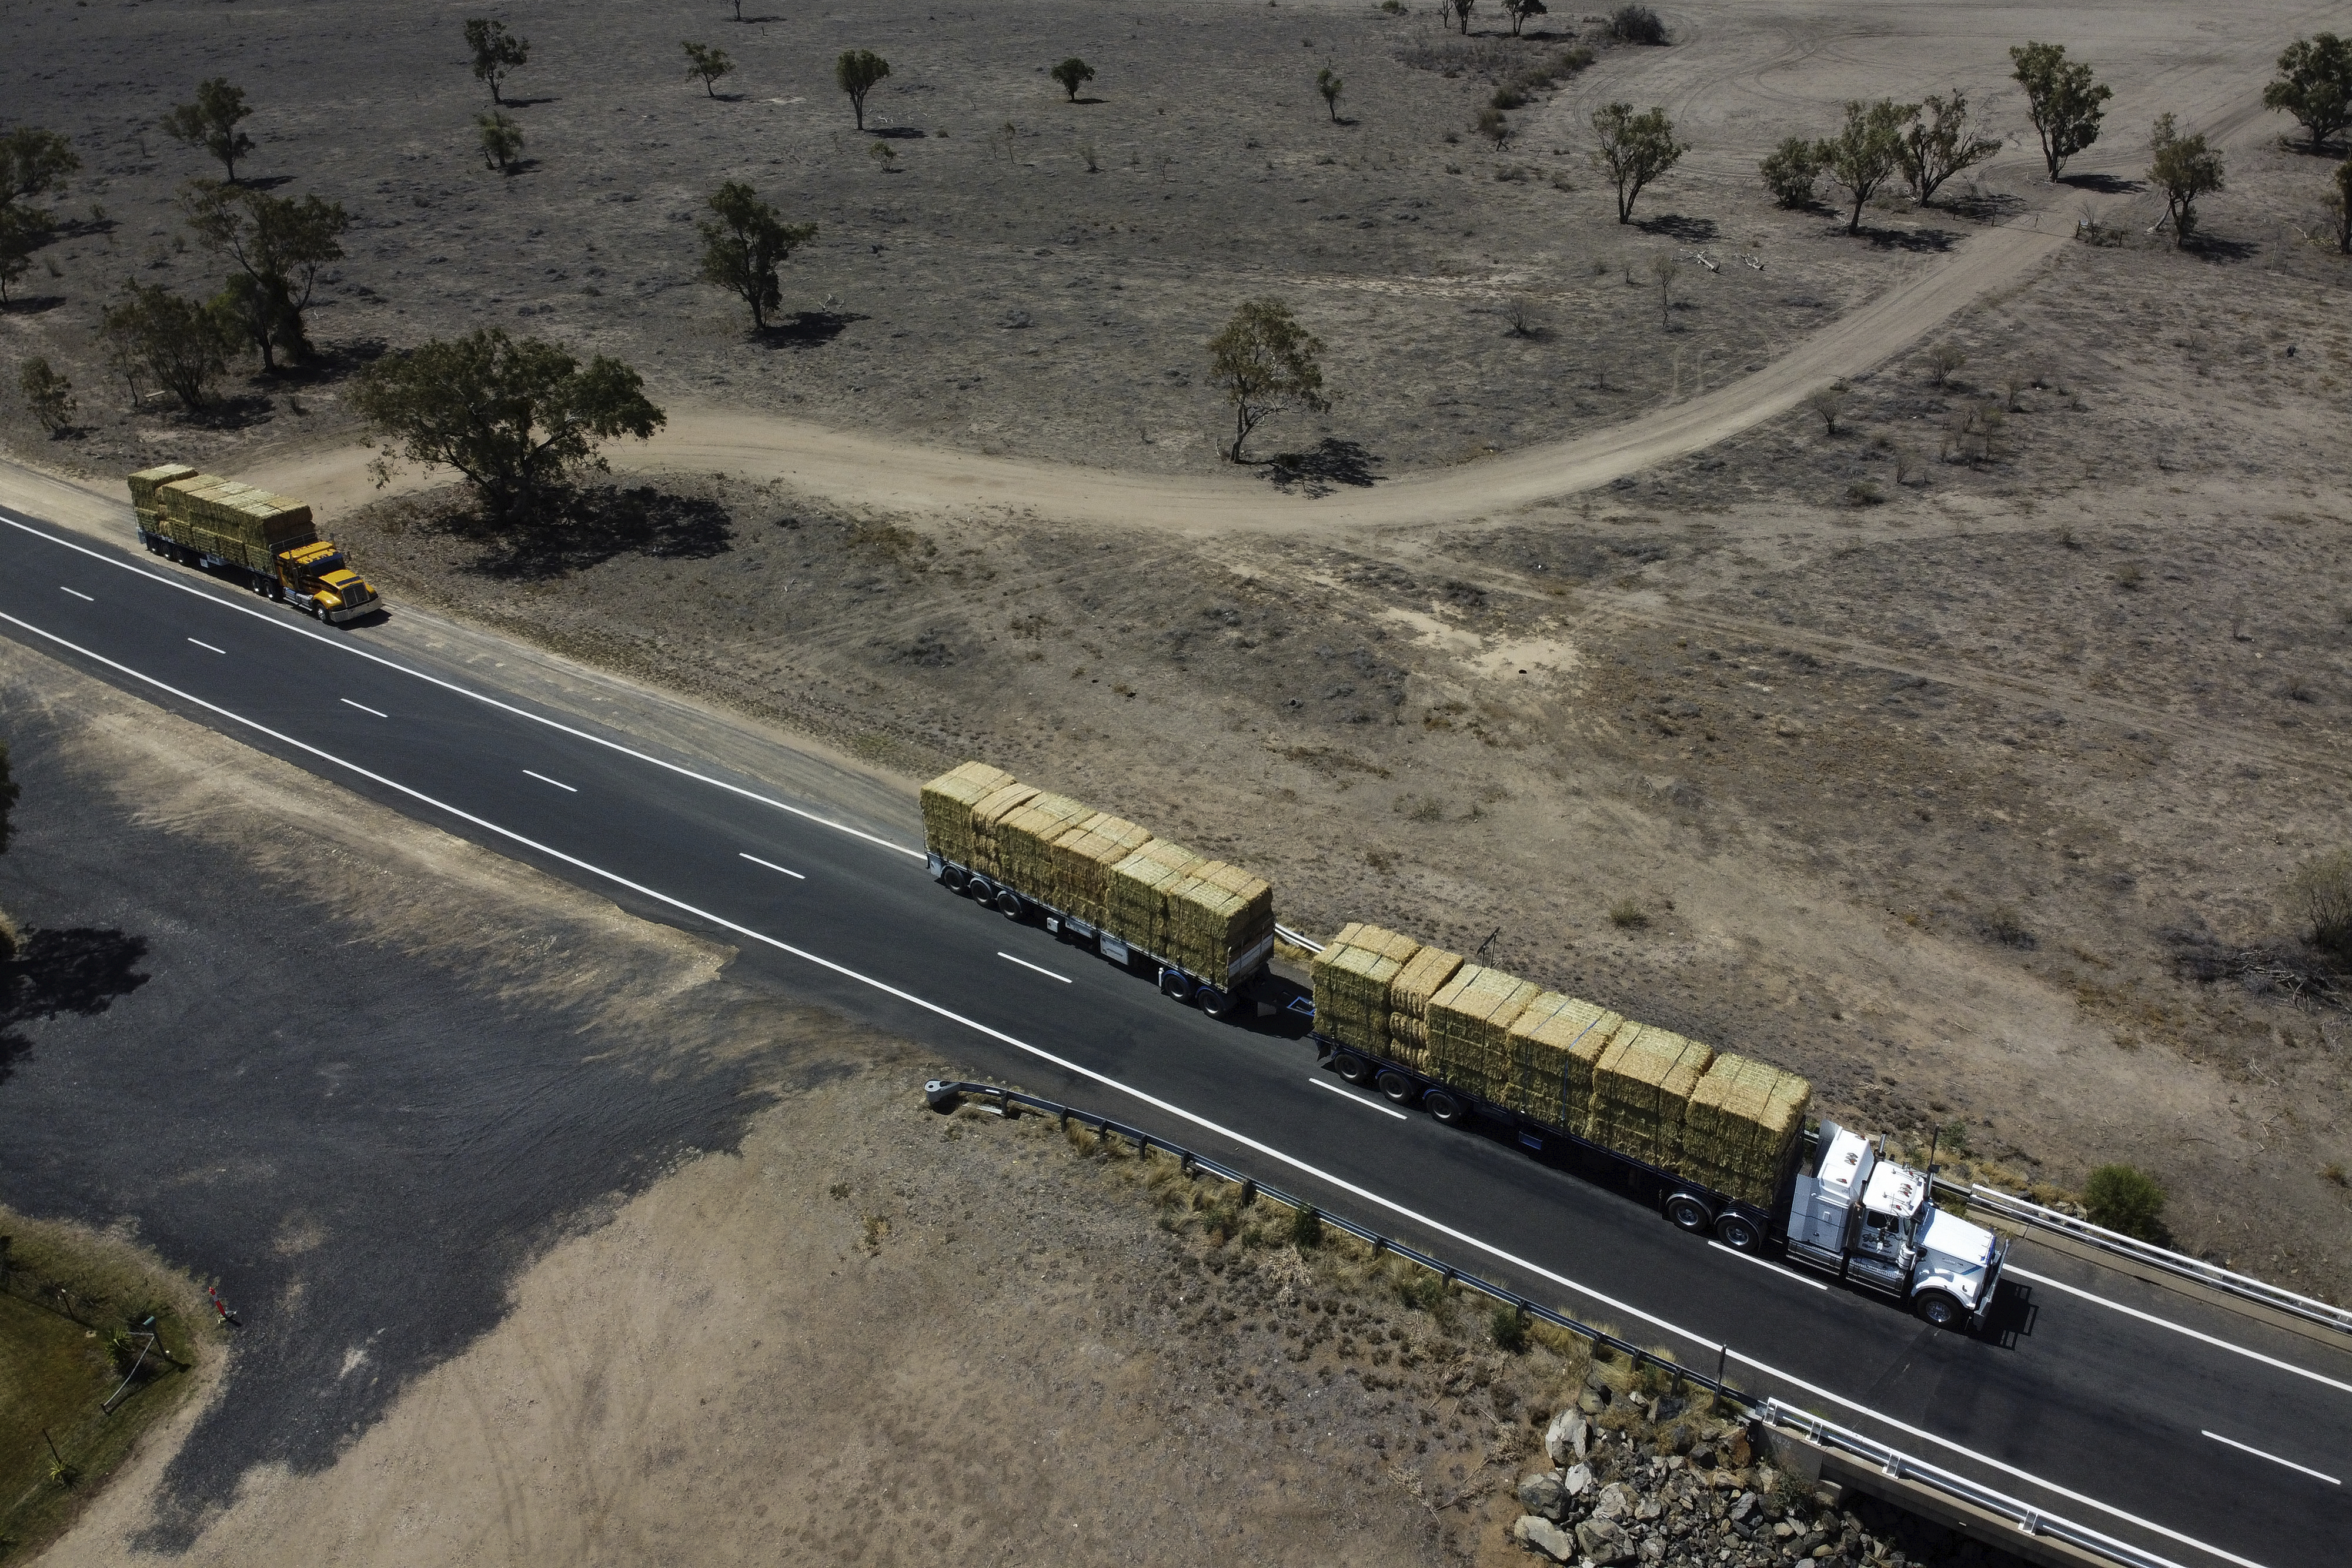 Trucks on the Gwydir highway transporting hay from Bendigo, Victoria to drought-affected parts of Queensland, seen near Bullarah, NSW, on Wednesday 20 November 2019. Photo: Alex Ellinghausen